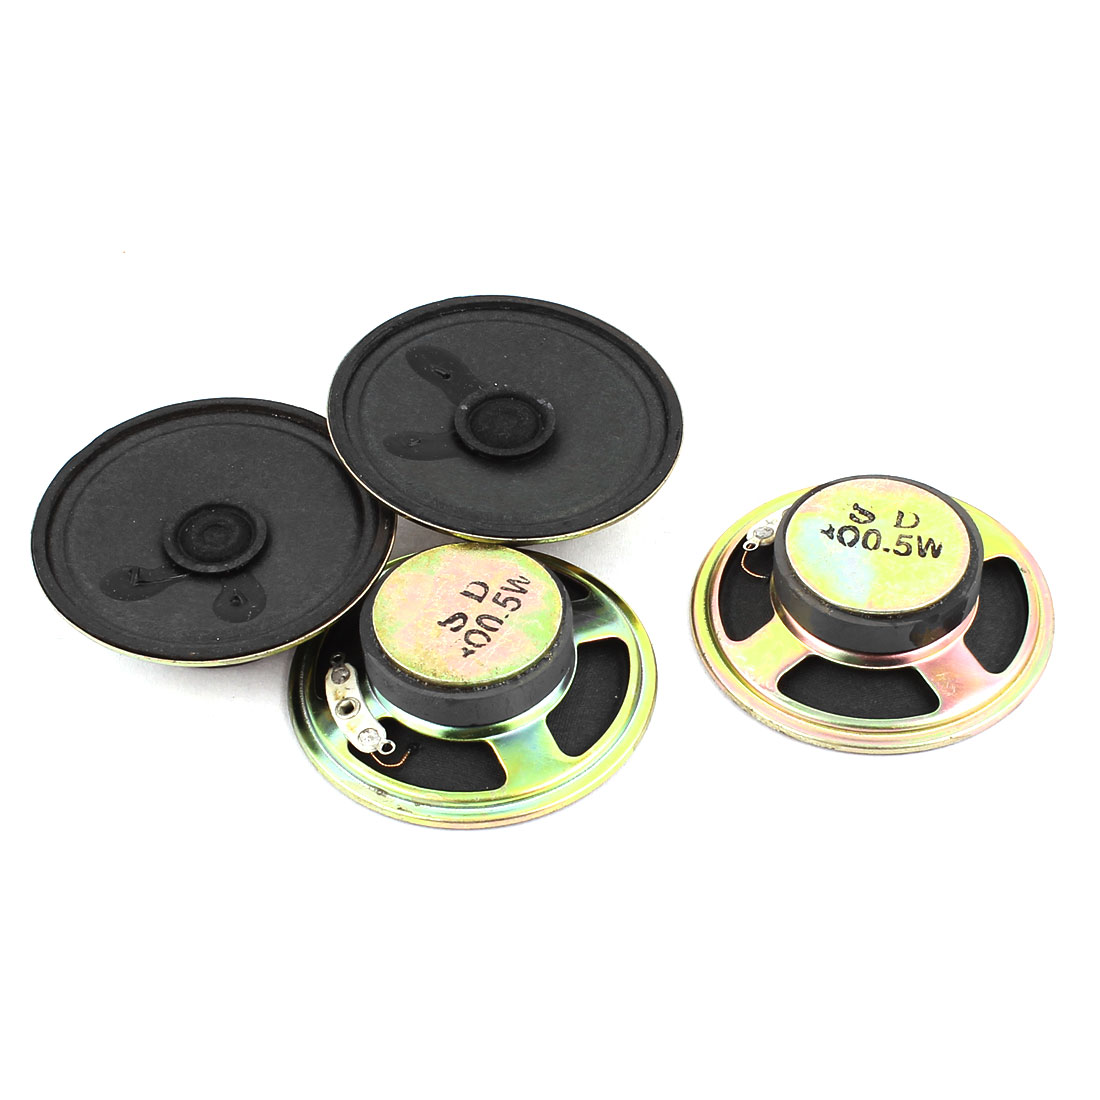 0.5W 57mm Diameter External Magnet Speaker Loudspeaker 4Pcs